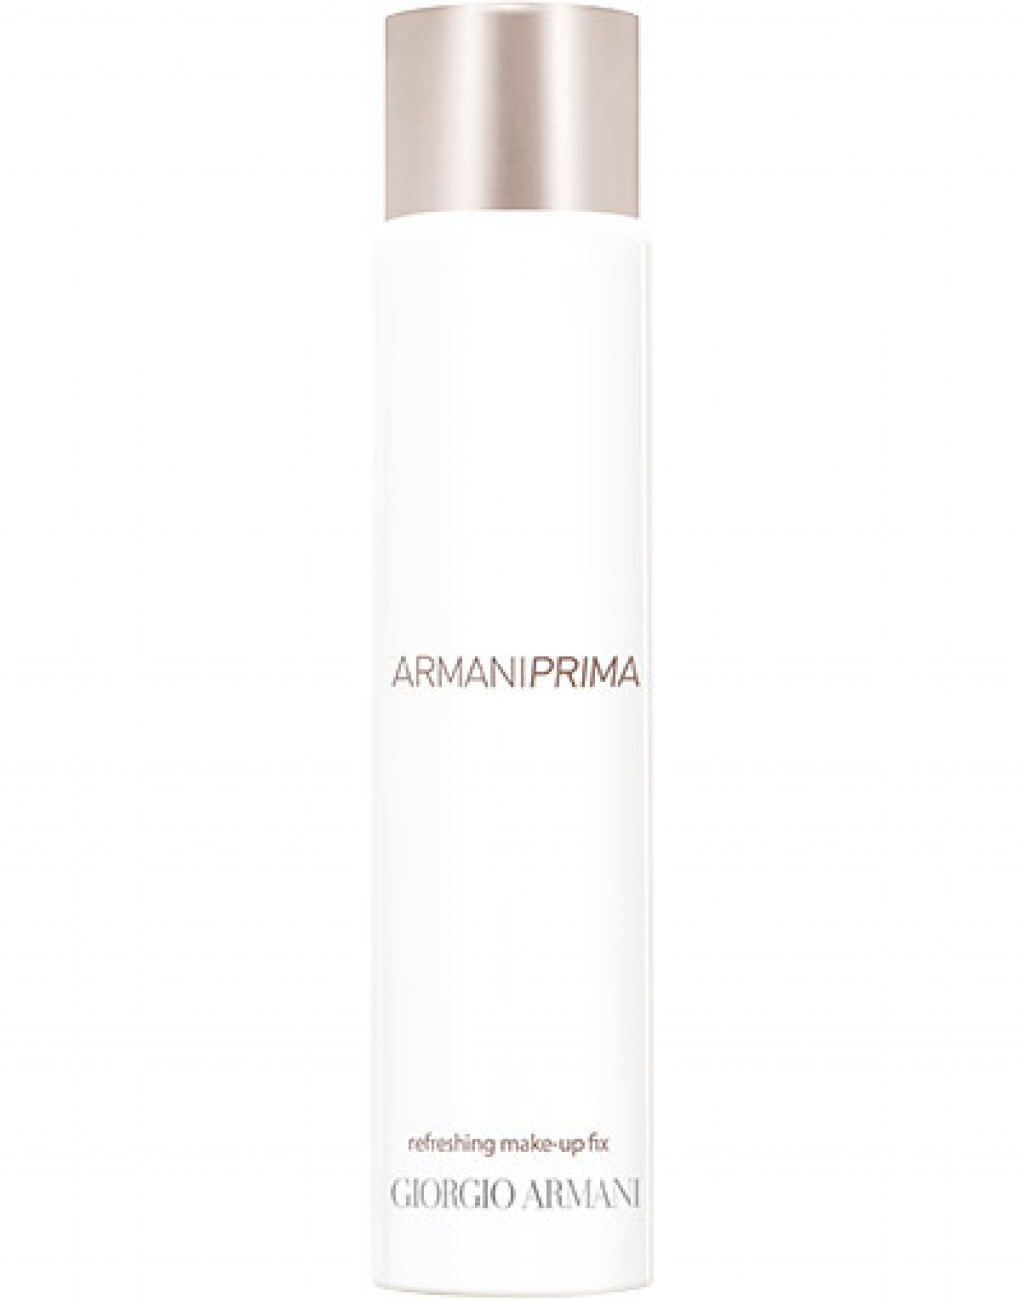 Giorgio Armani Armani Prima Refreshing Make Up Fix Skin